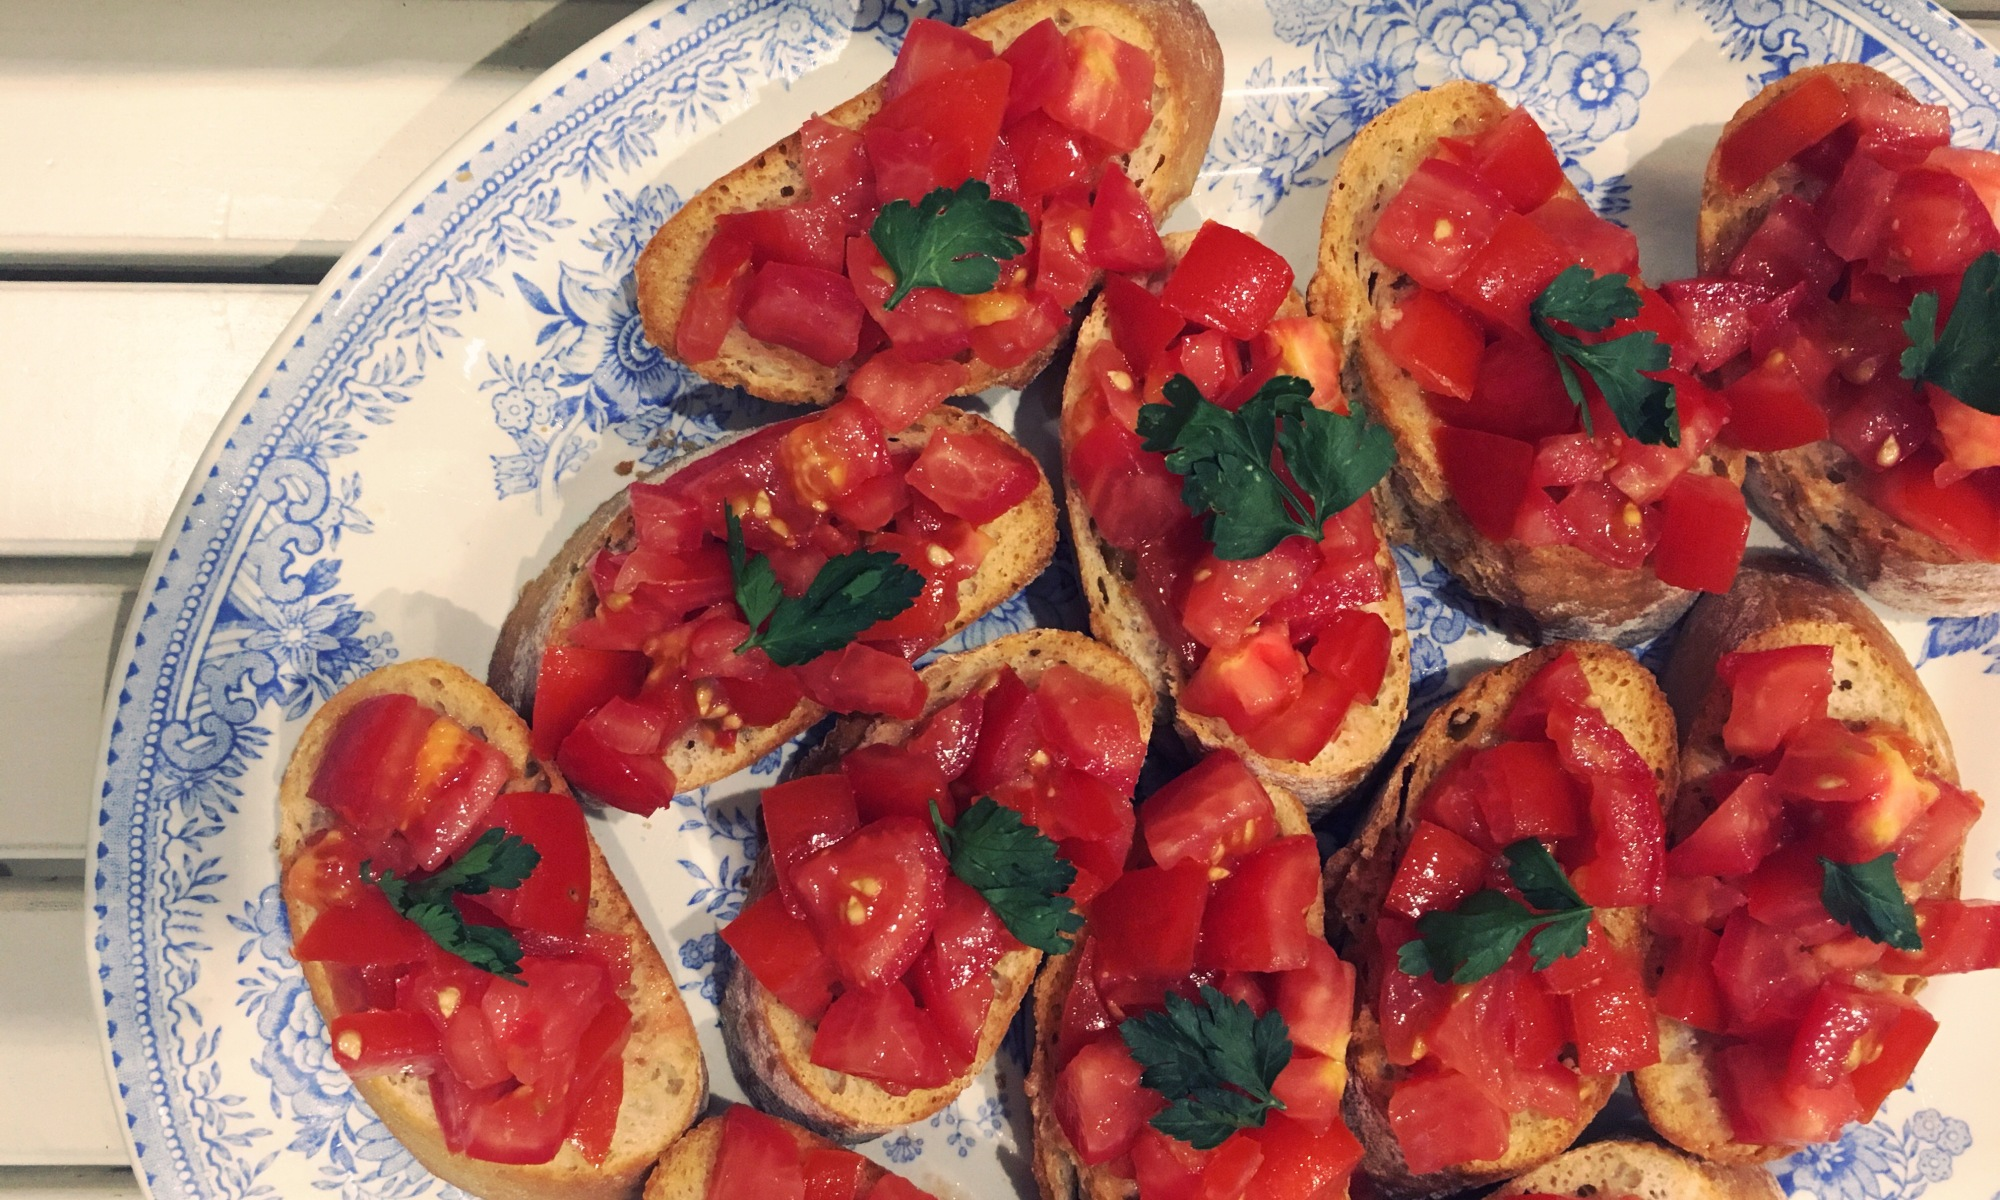 pan con tomate, sussex tomatoes, garlic, sourdough baguette